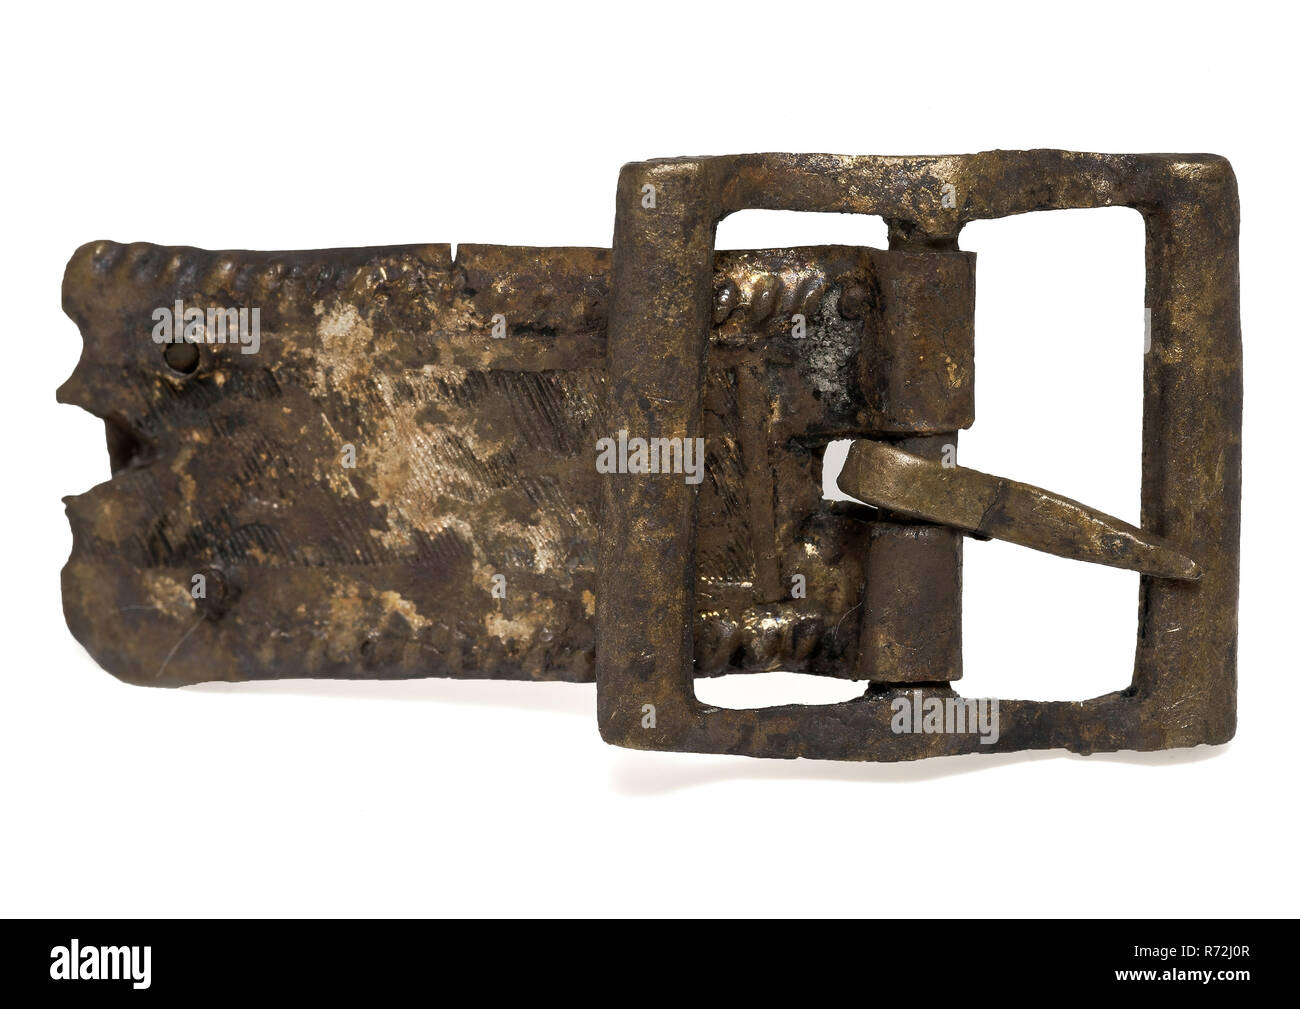 Brass buckle, rectangular and processed leather fitting, buckle fastener part soil find brass metal, with handle molded engraved Buckle with rectangular bow and middle post Around the middle post an elongated decorated piece of leather furniture The decoration consists of twine decor along the perimeter in the middle field with arches left in hatching poorly identifiable archeology Rotterdam rail tunnel attaching fasten garments Soil discovery: trajectory Rotterdam rail tunnel. Stock Photo